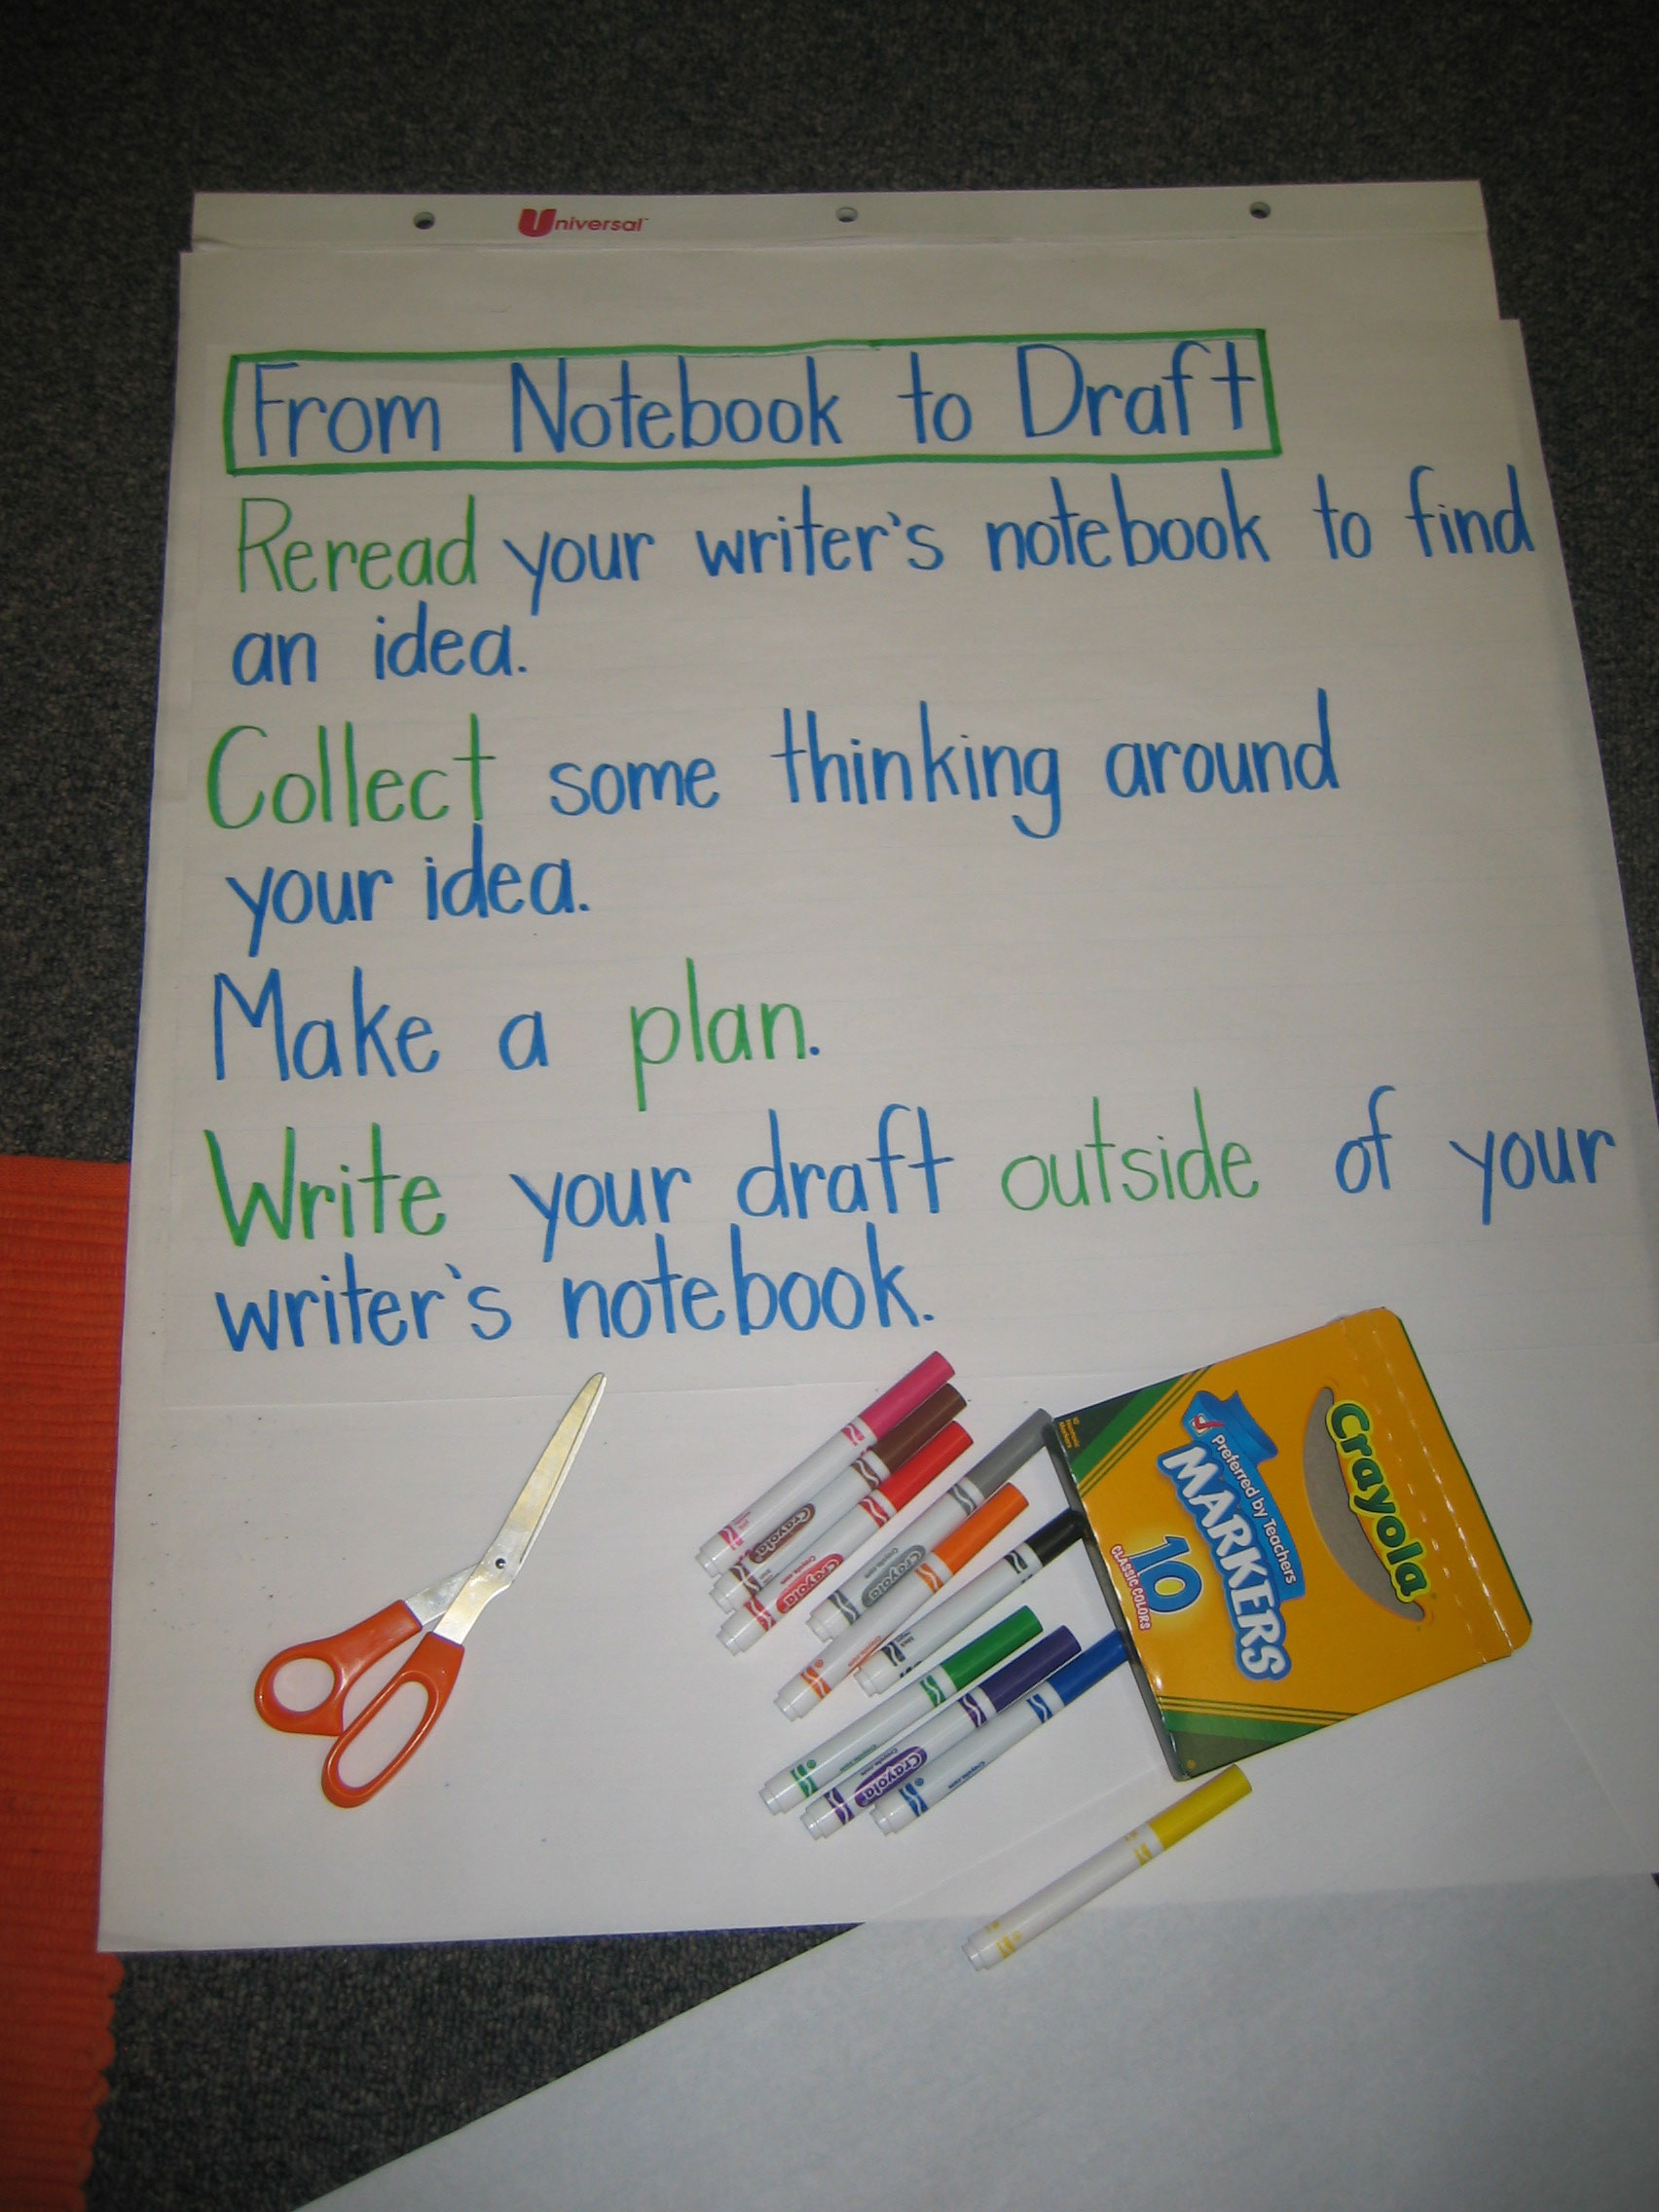 teaching the writing process Process writing lessons teach students the five steps of the writing process through the four main writing genres, each divided into several text-type lessons.